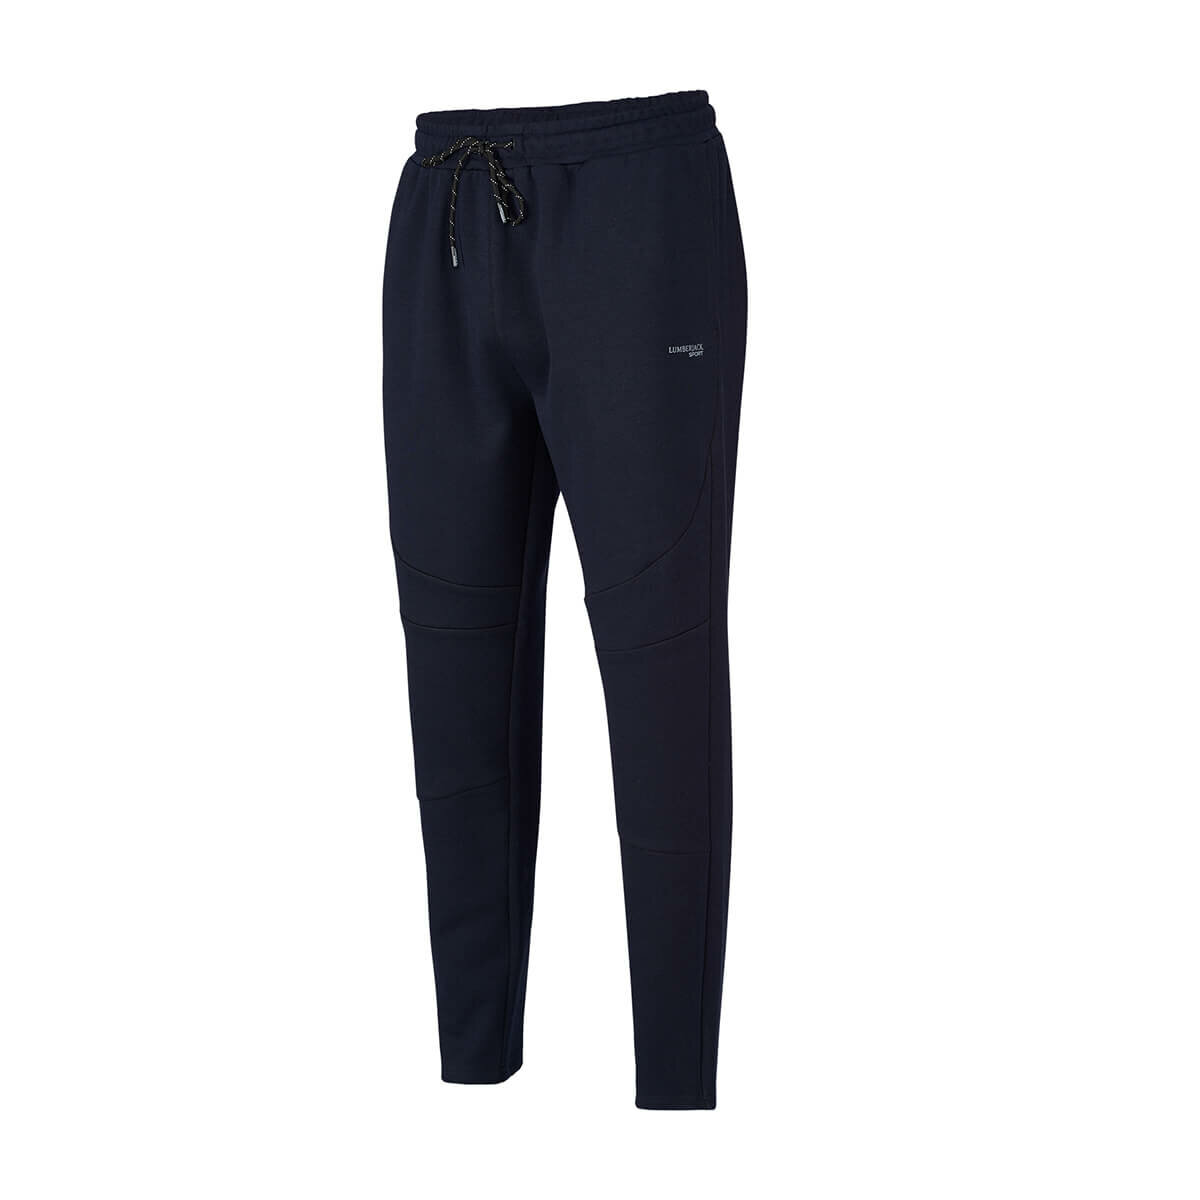 FLO ALEX-2 PANT Dark Blue Male Pantalon LUMBERJACK